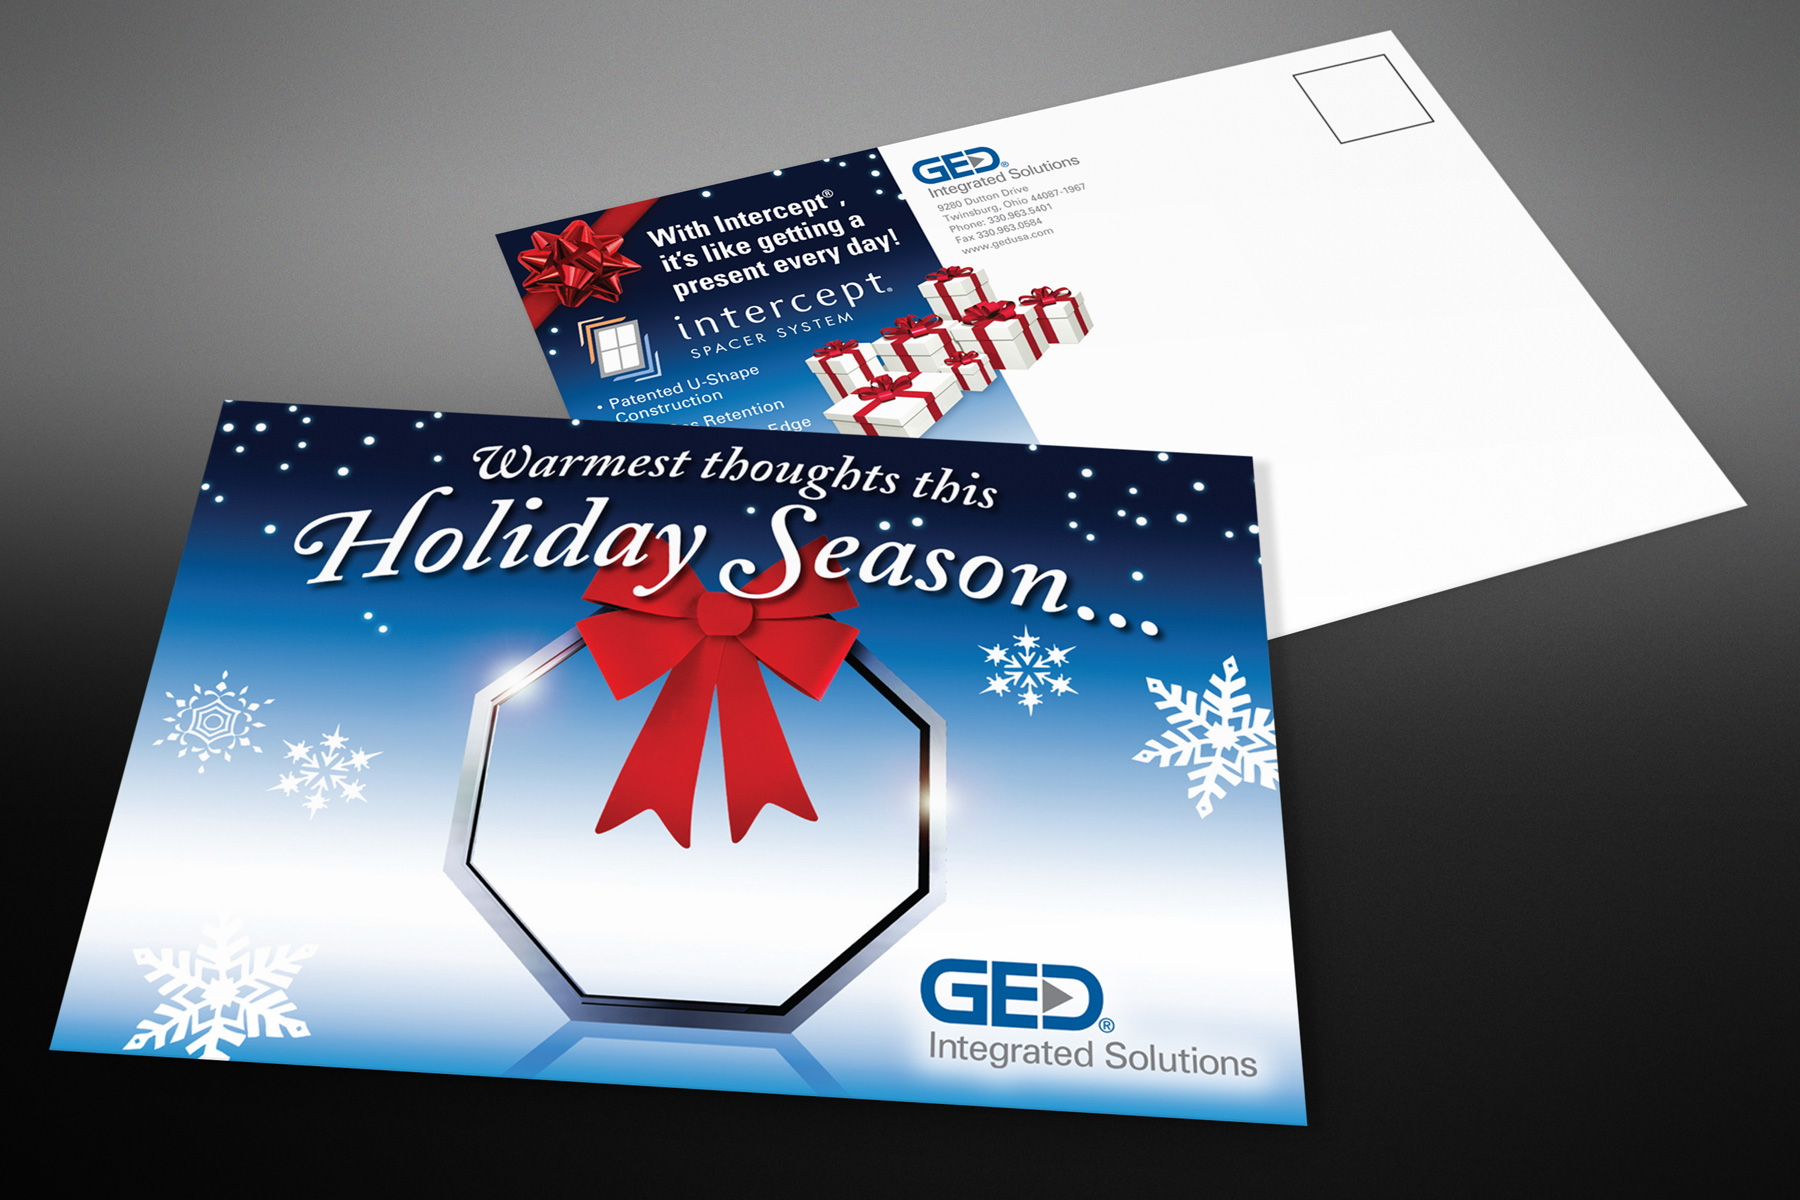 GED_Holiday_2_1800x1200